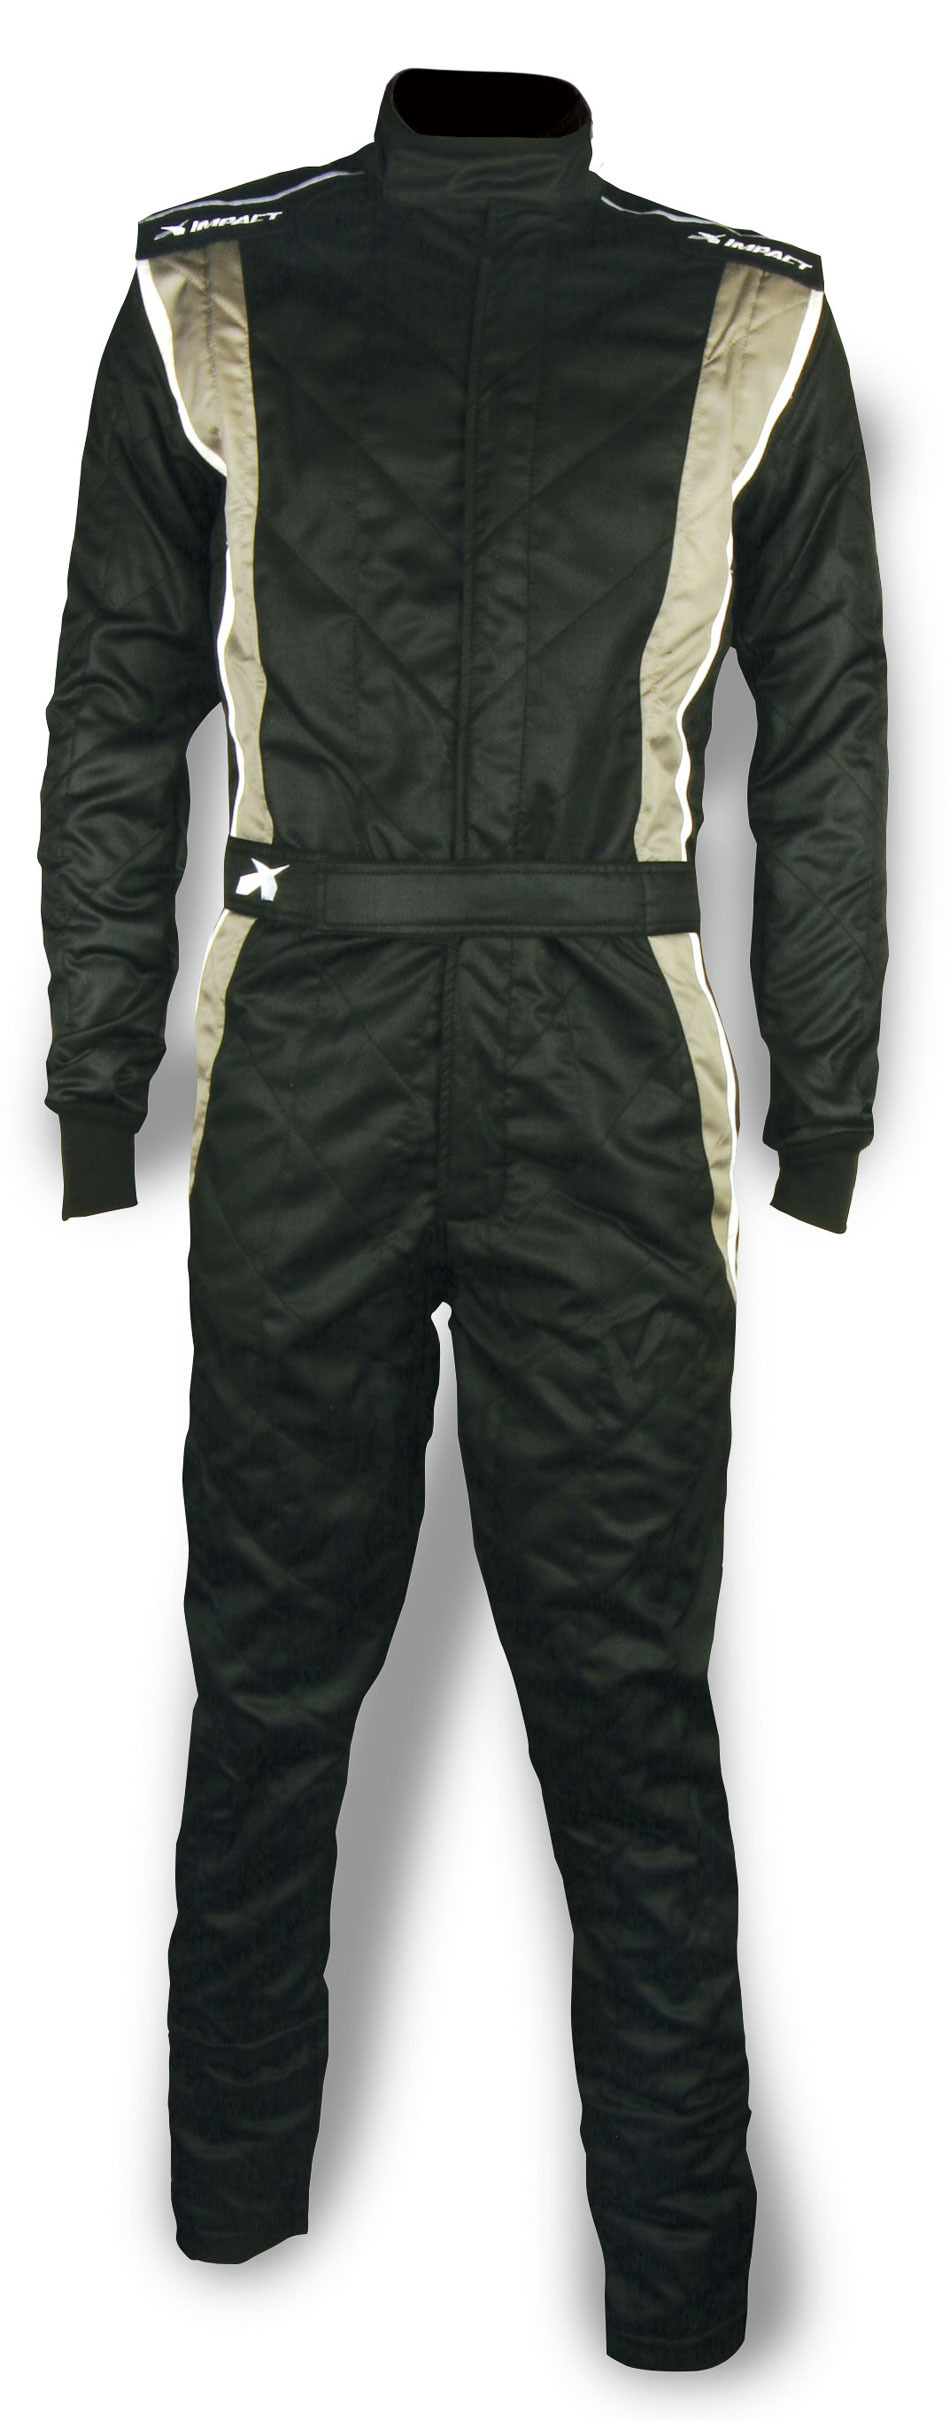 Impact Racing 25215513 Suit, Phenom DS, Driving, 1 Piece, SFI-3.2A/5, FIA Approved, Double Layer, Nomex, Black/Gray, Large, Each